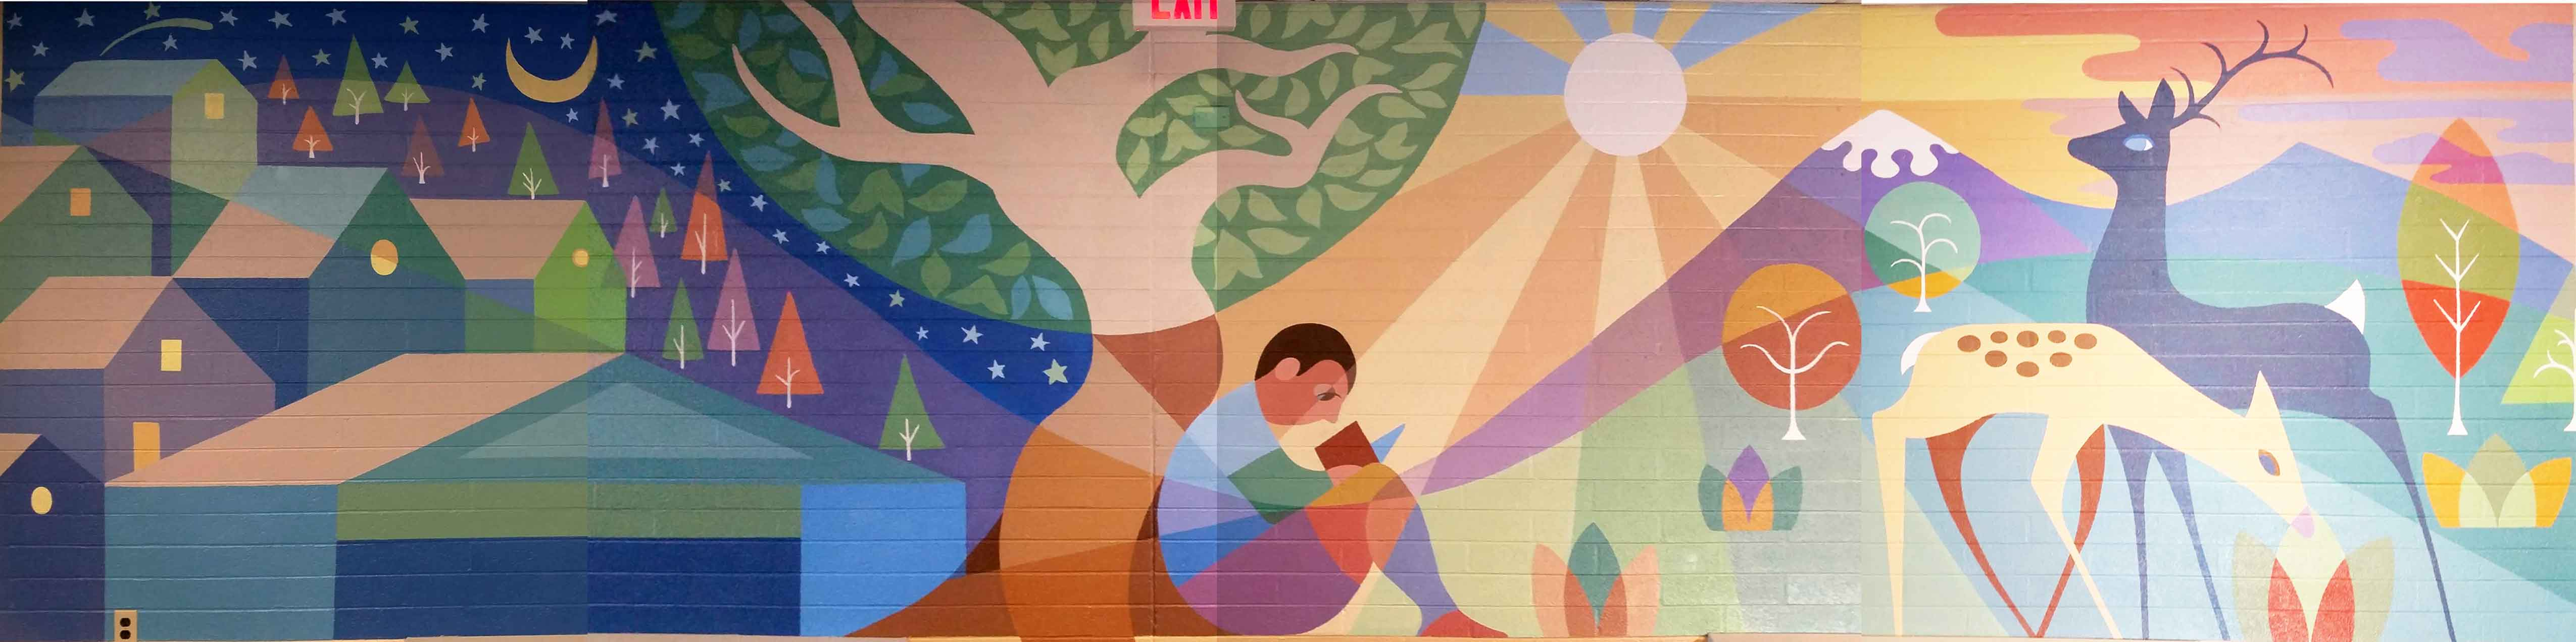 Thomas School full mural splice